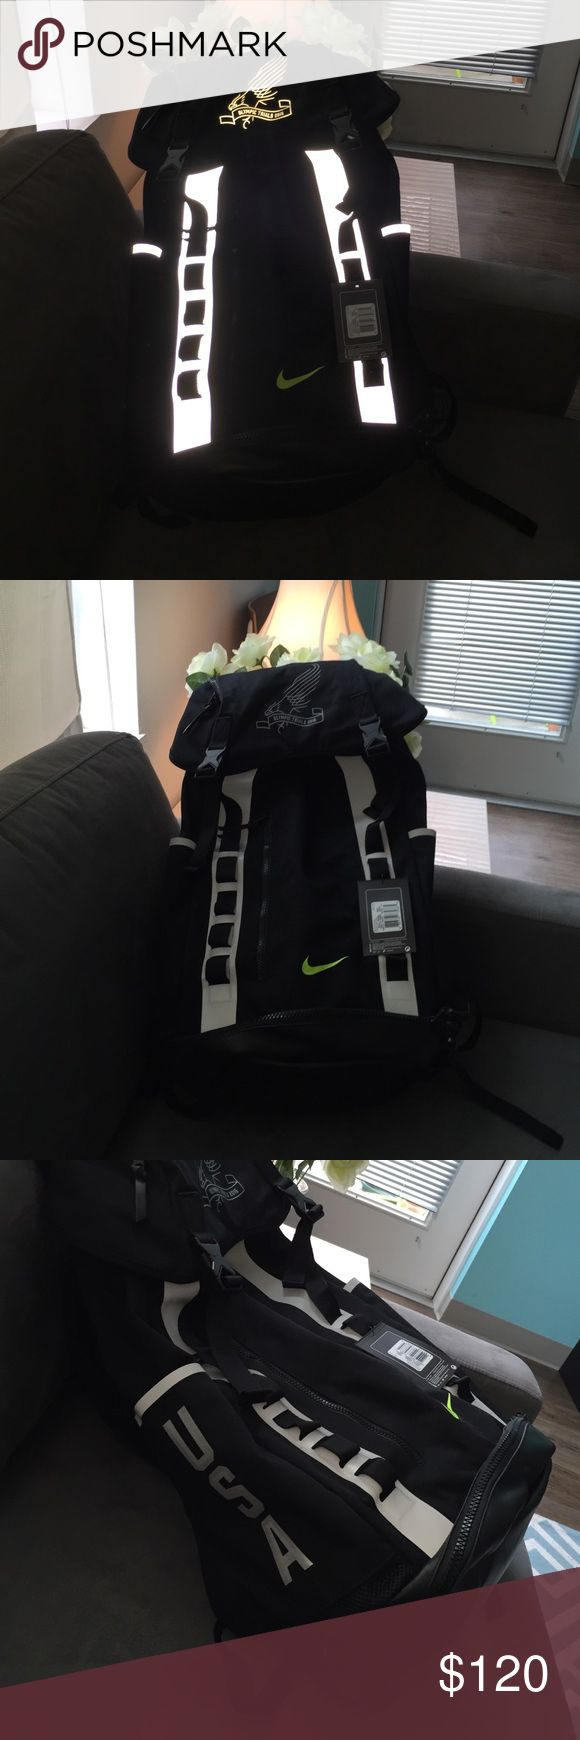 1000 Ideas About Nike Backpacks On Pinterest Nike Bags